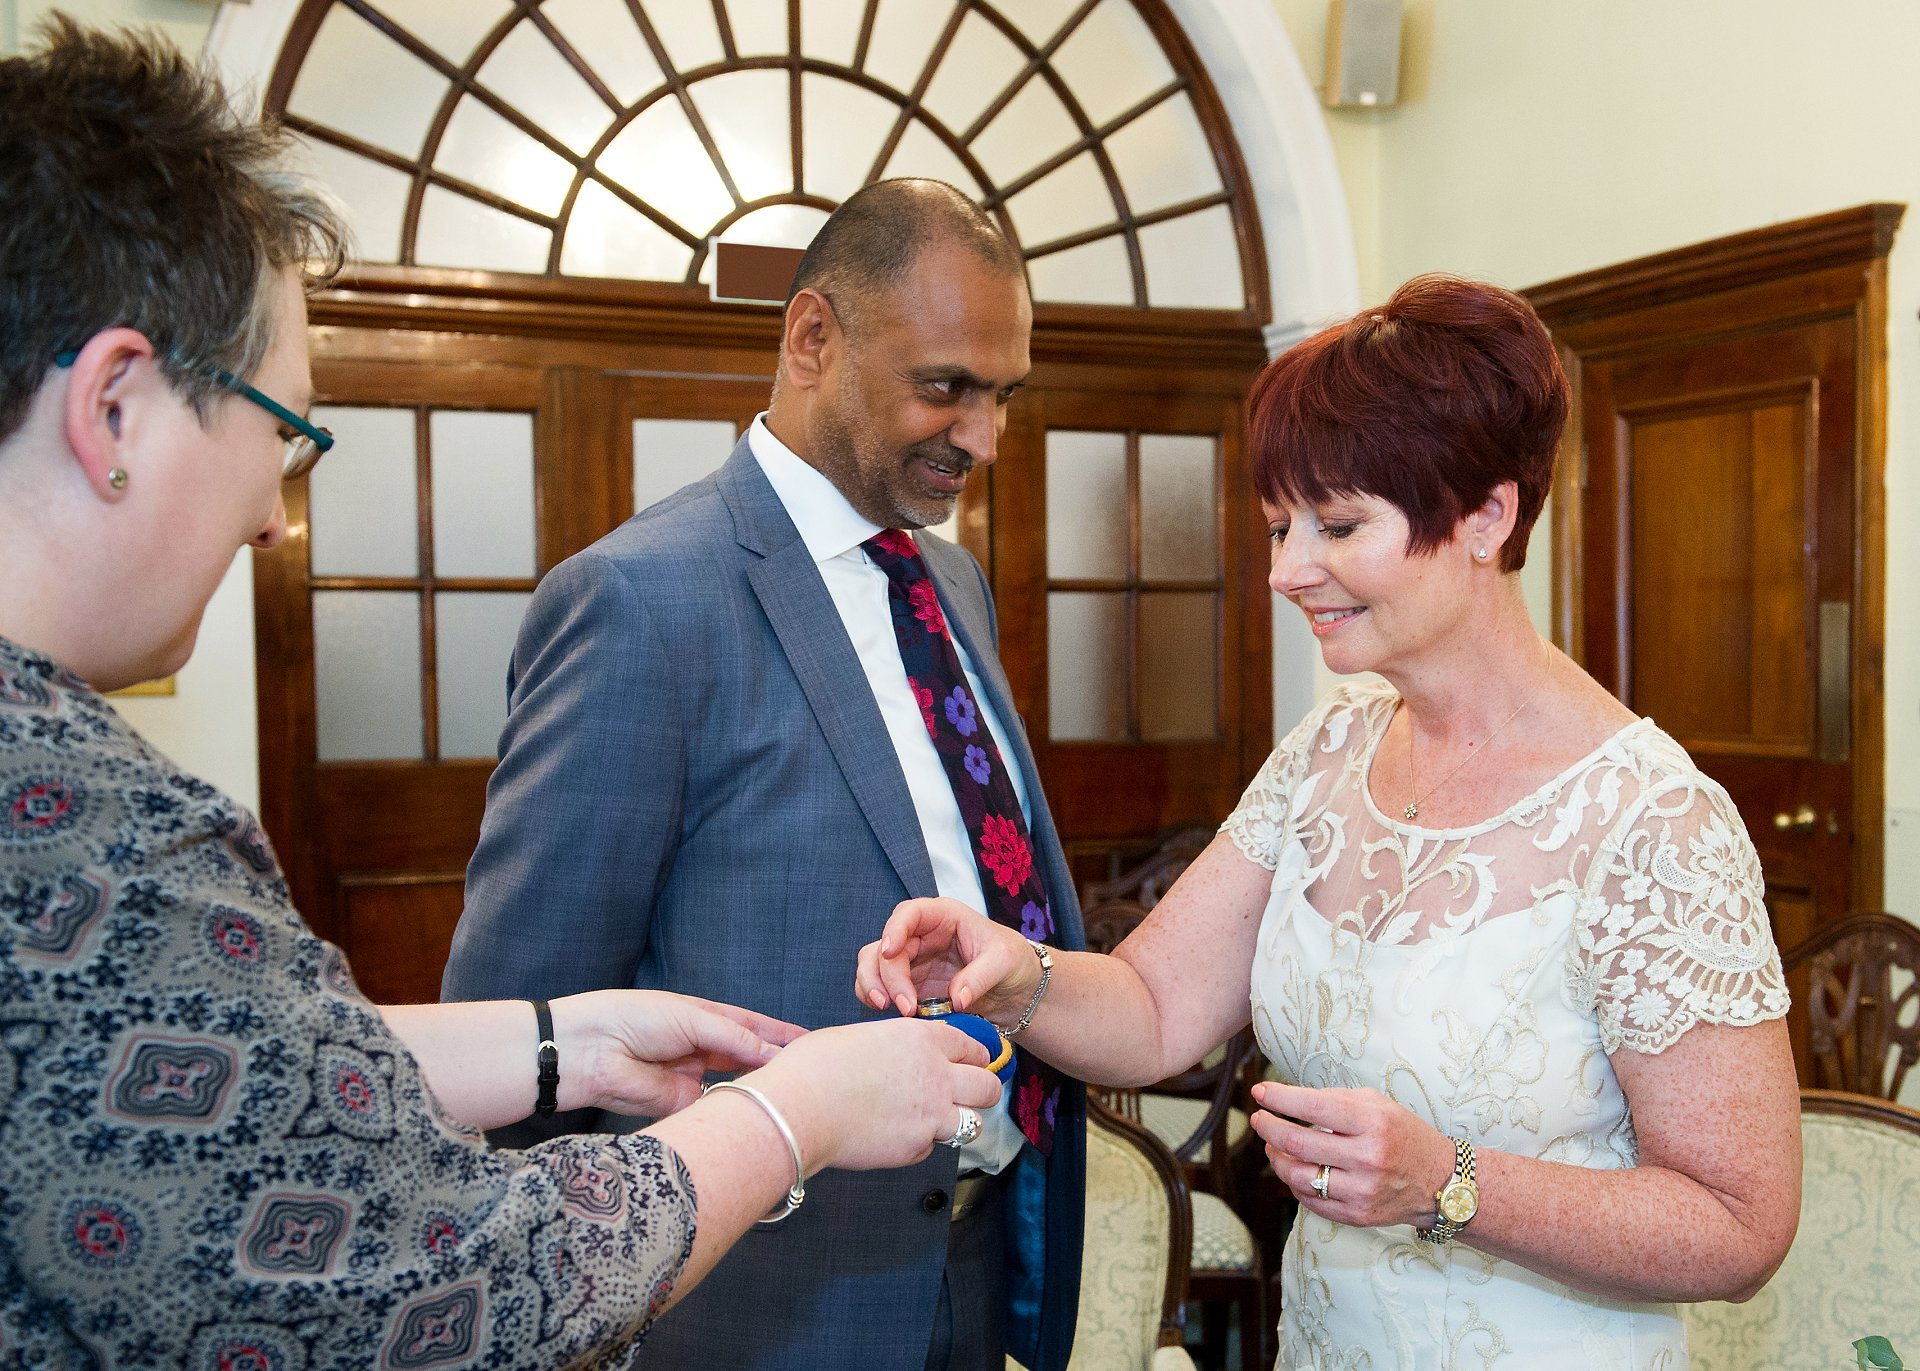 Chelsea Old Town Hall wedding photographer Emma Duggan photographs a couple marrying in the Rossetti Room of the Kensington & Chelsea Register Office with the groom smiling as his bride takes the wedding band from the Registrar